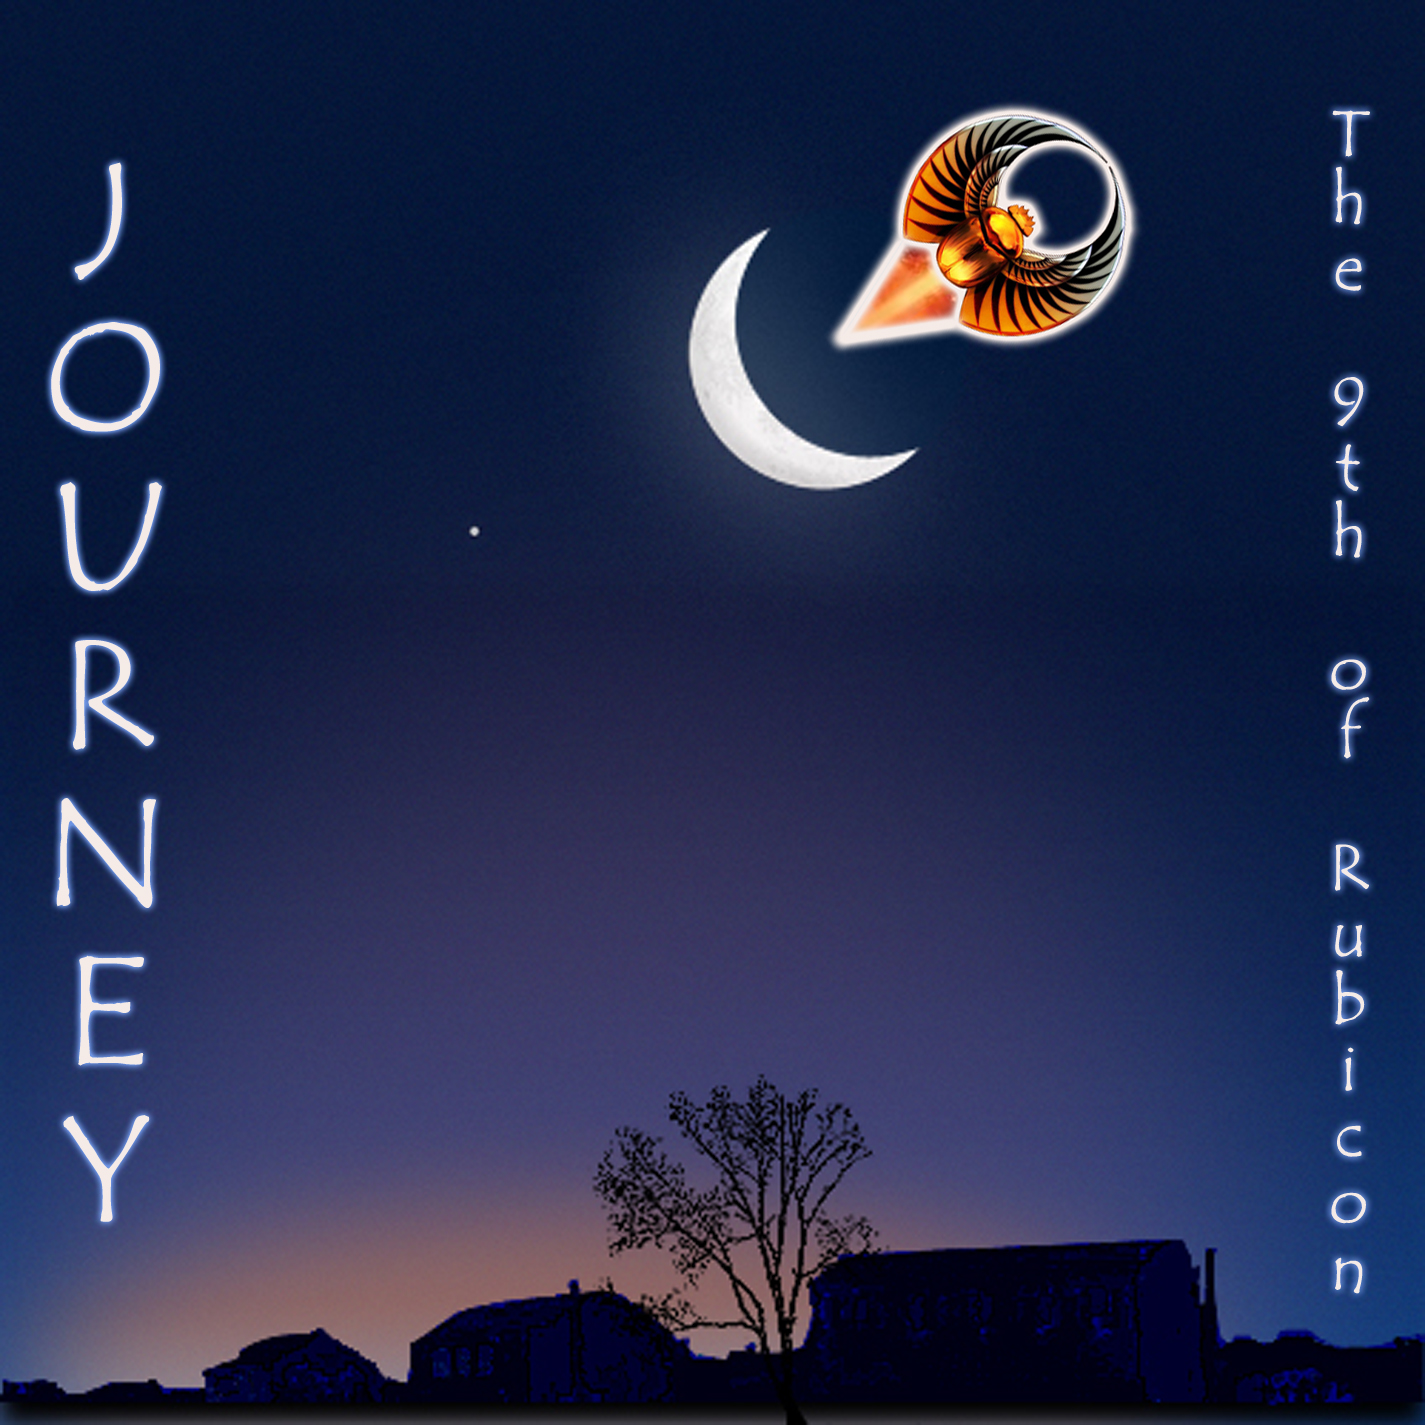 Journey - The 9th of Rubicon - Cover